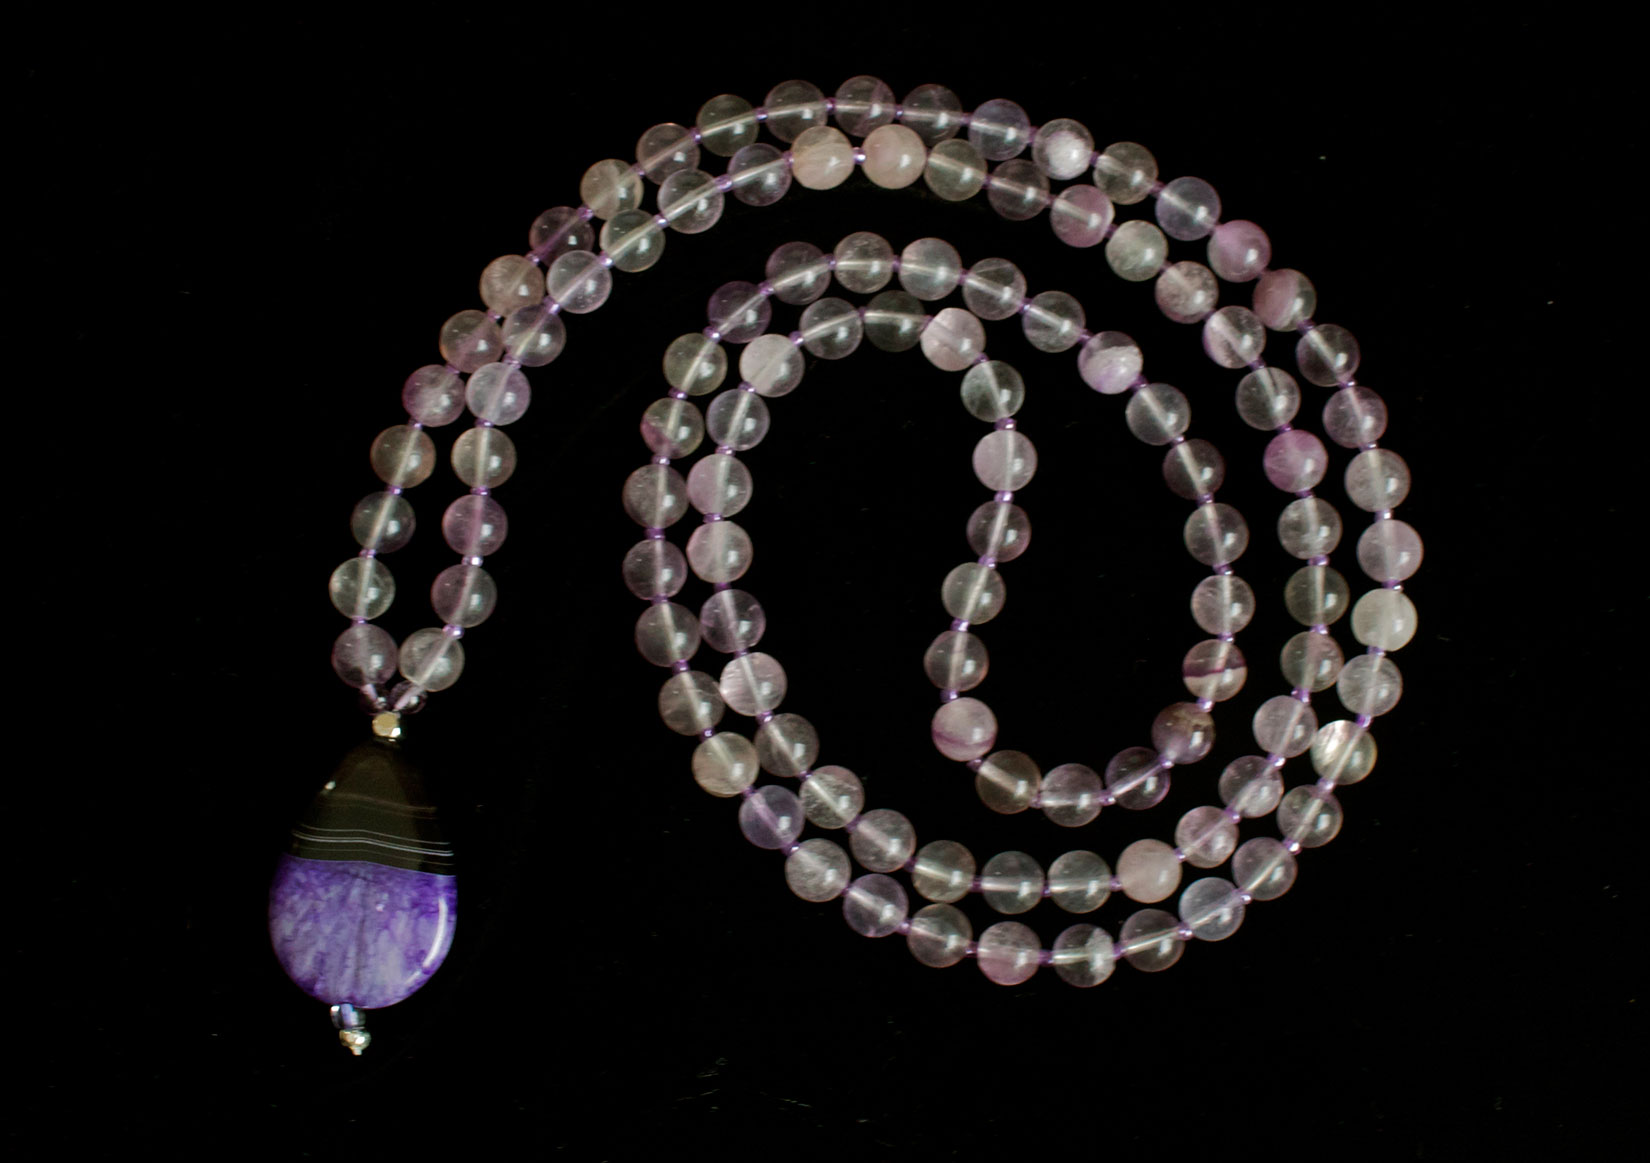 amethyst-and-purple-banded-agate-mala.jpg